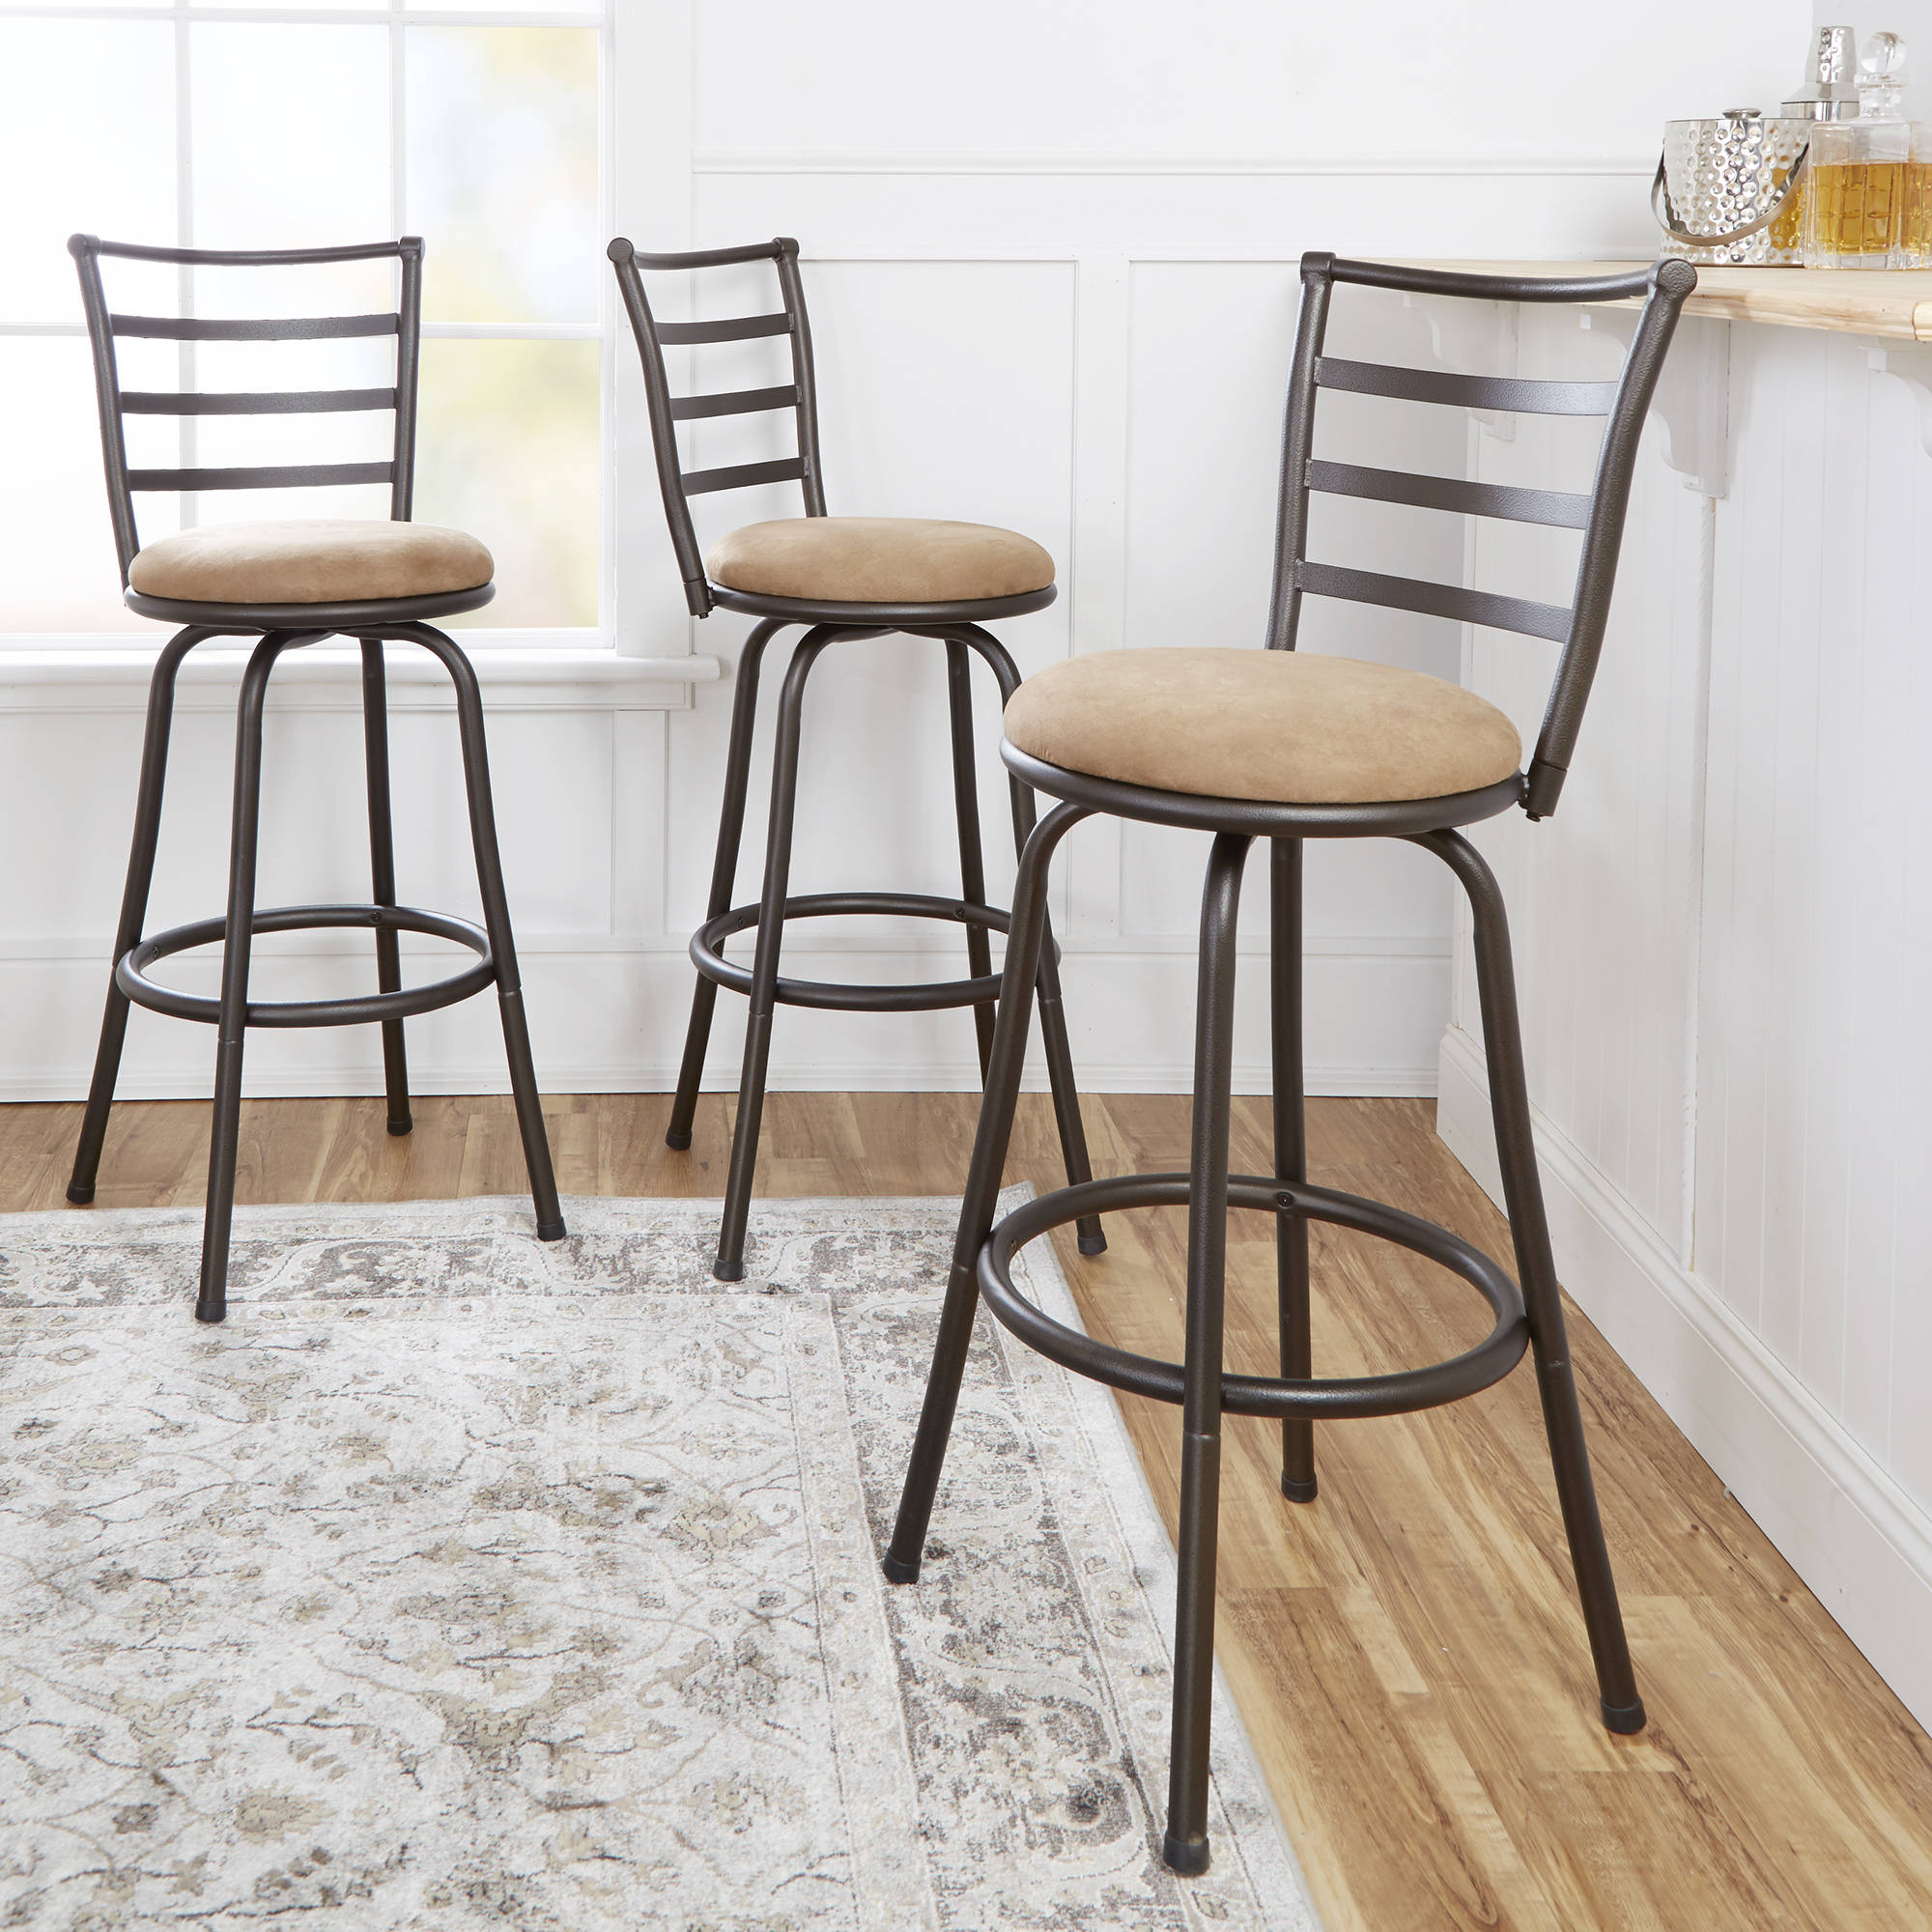 Mainstays Adjustable-Height Swivel Barstool, Hammered Bronze Finish ...